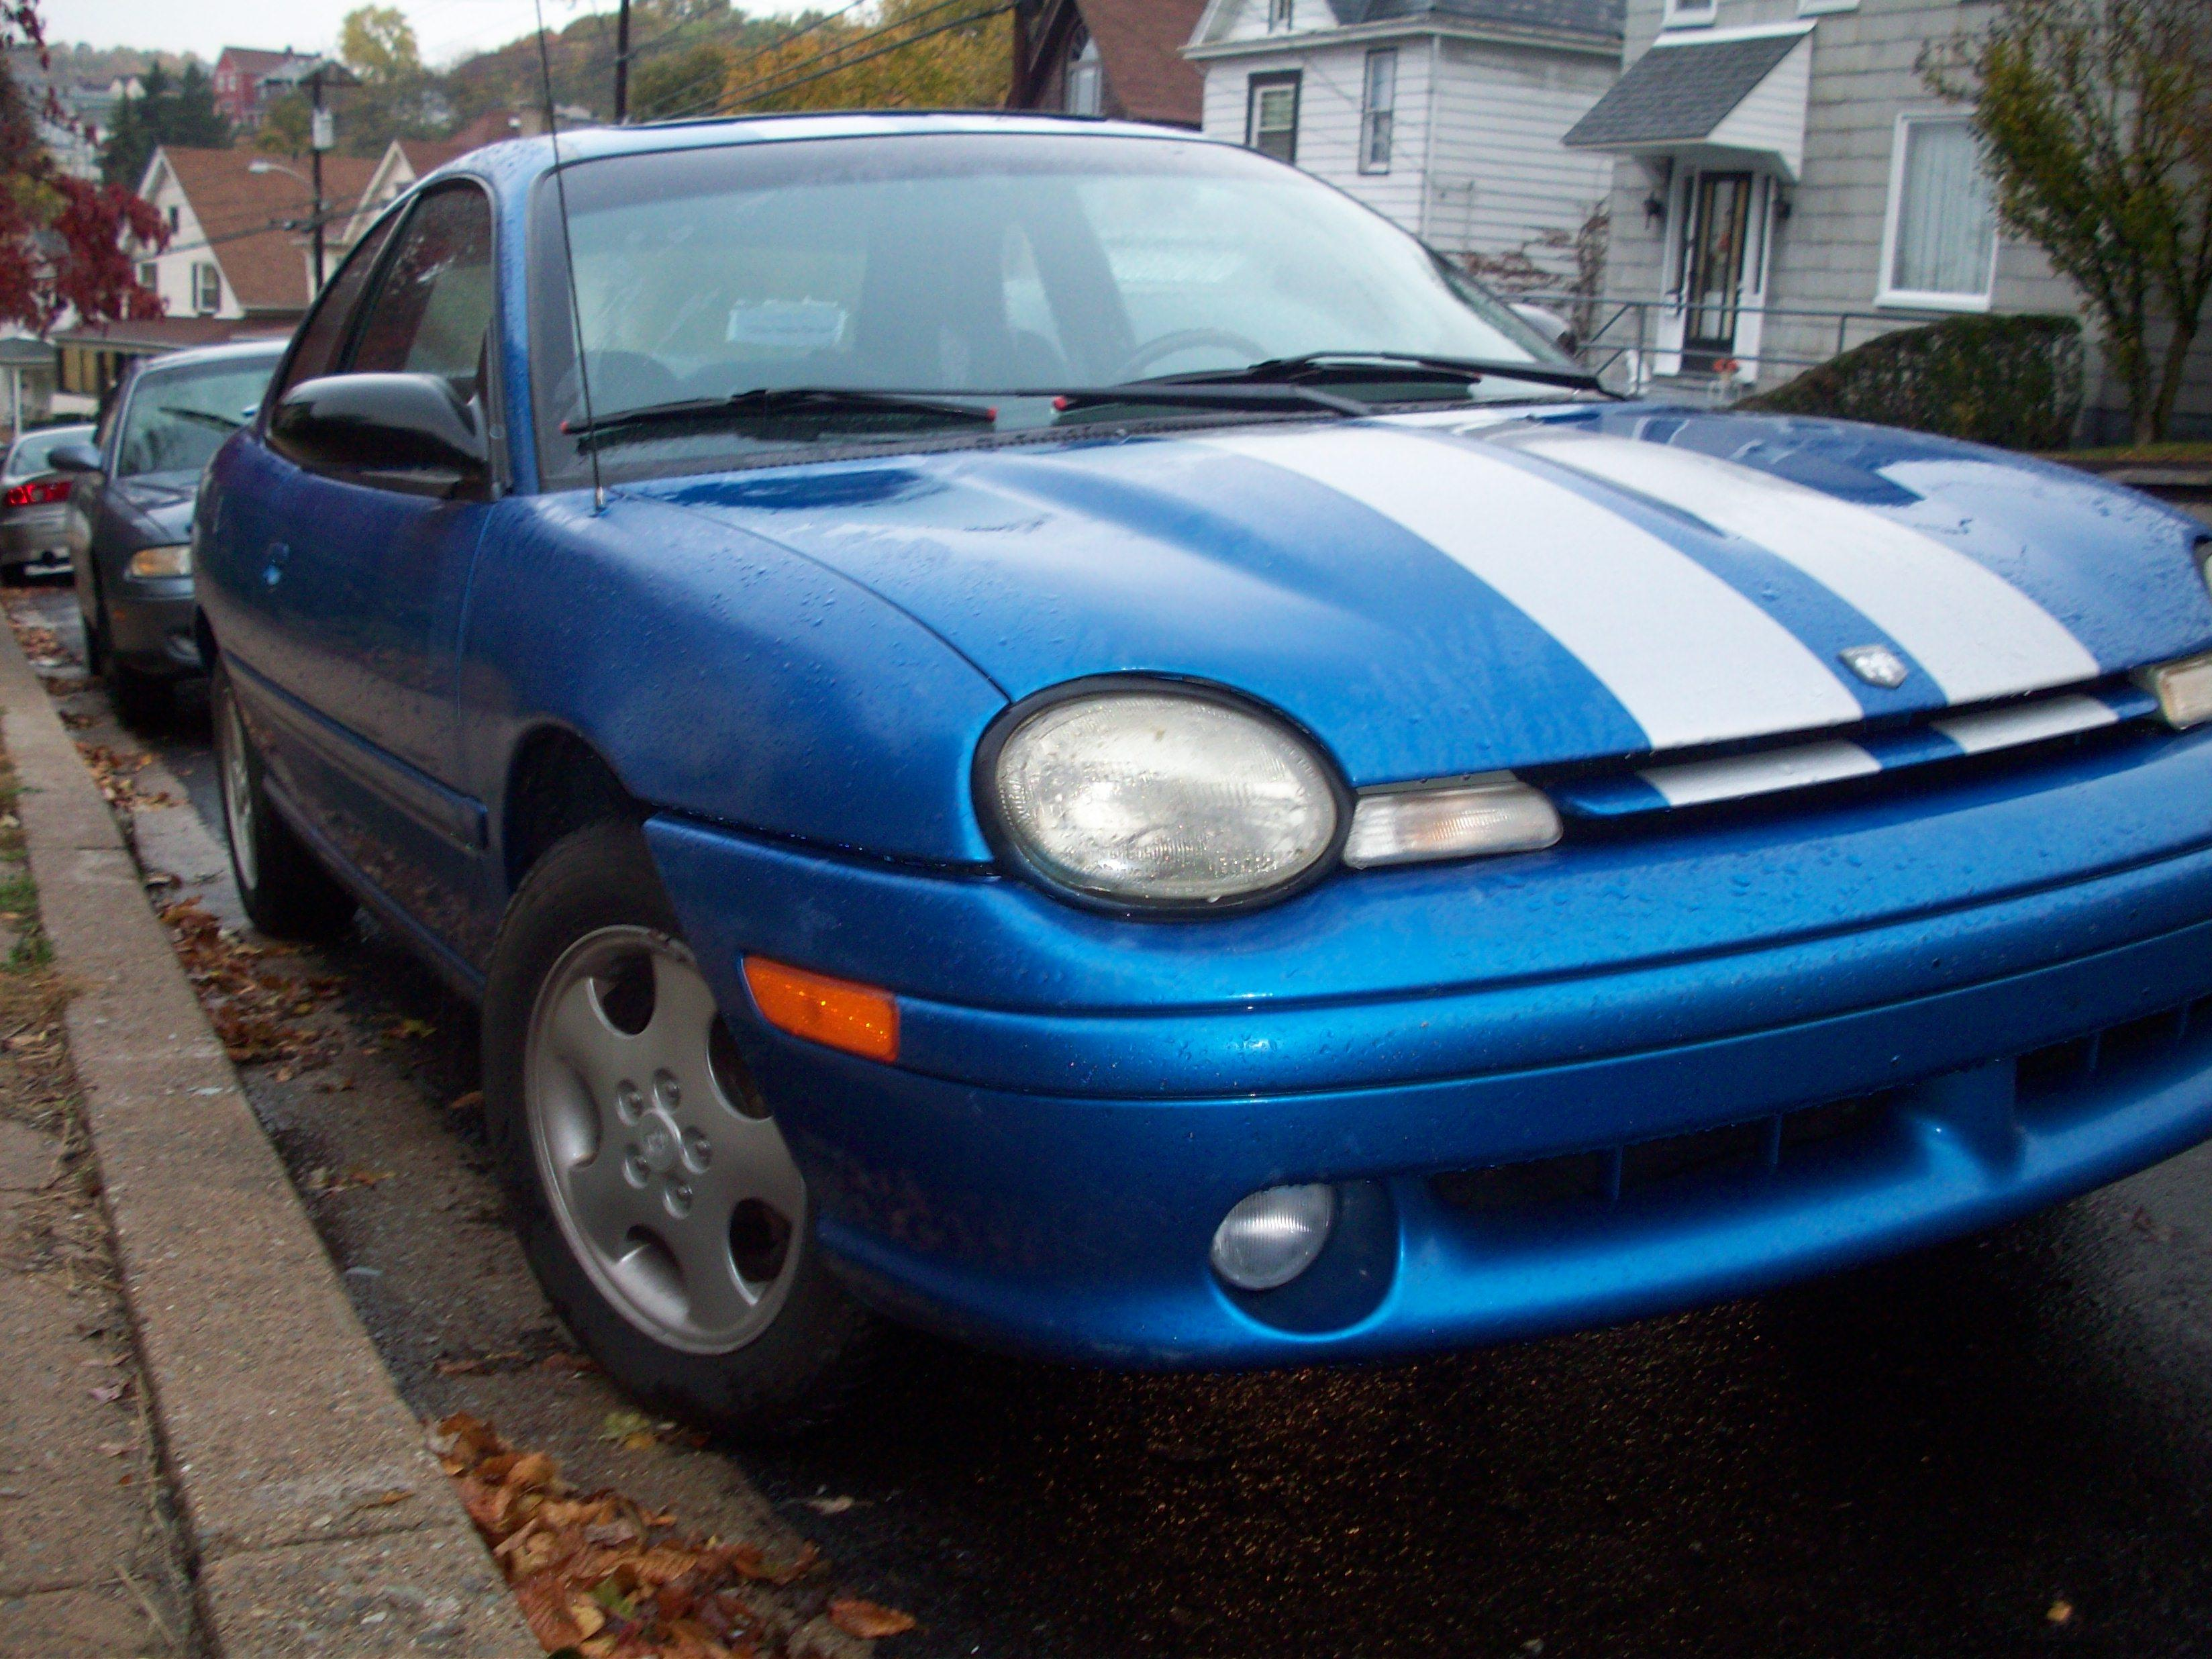 an analysis of dodges advertisement for promotion of the 1999 dodge neon automobile